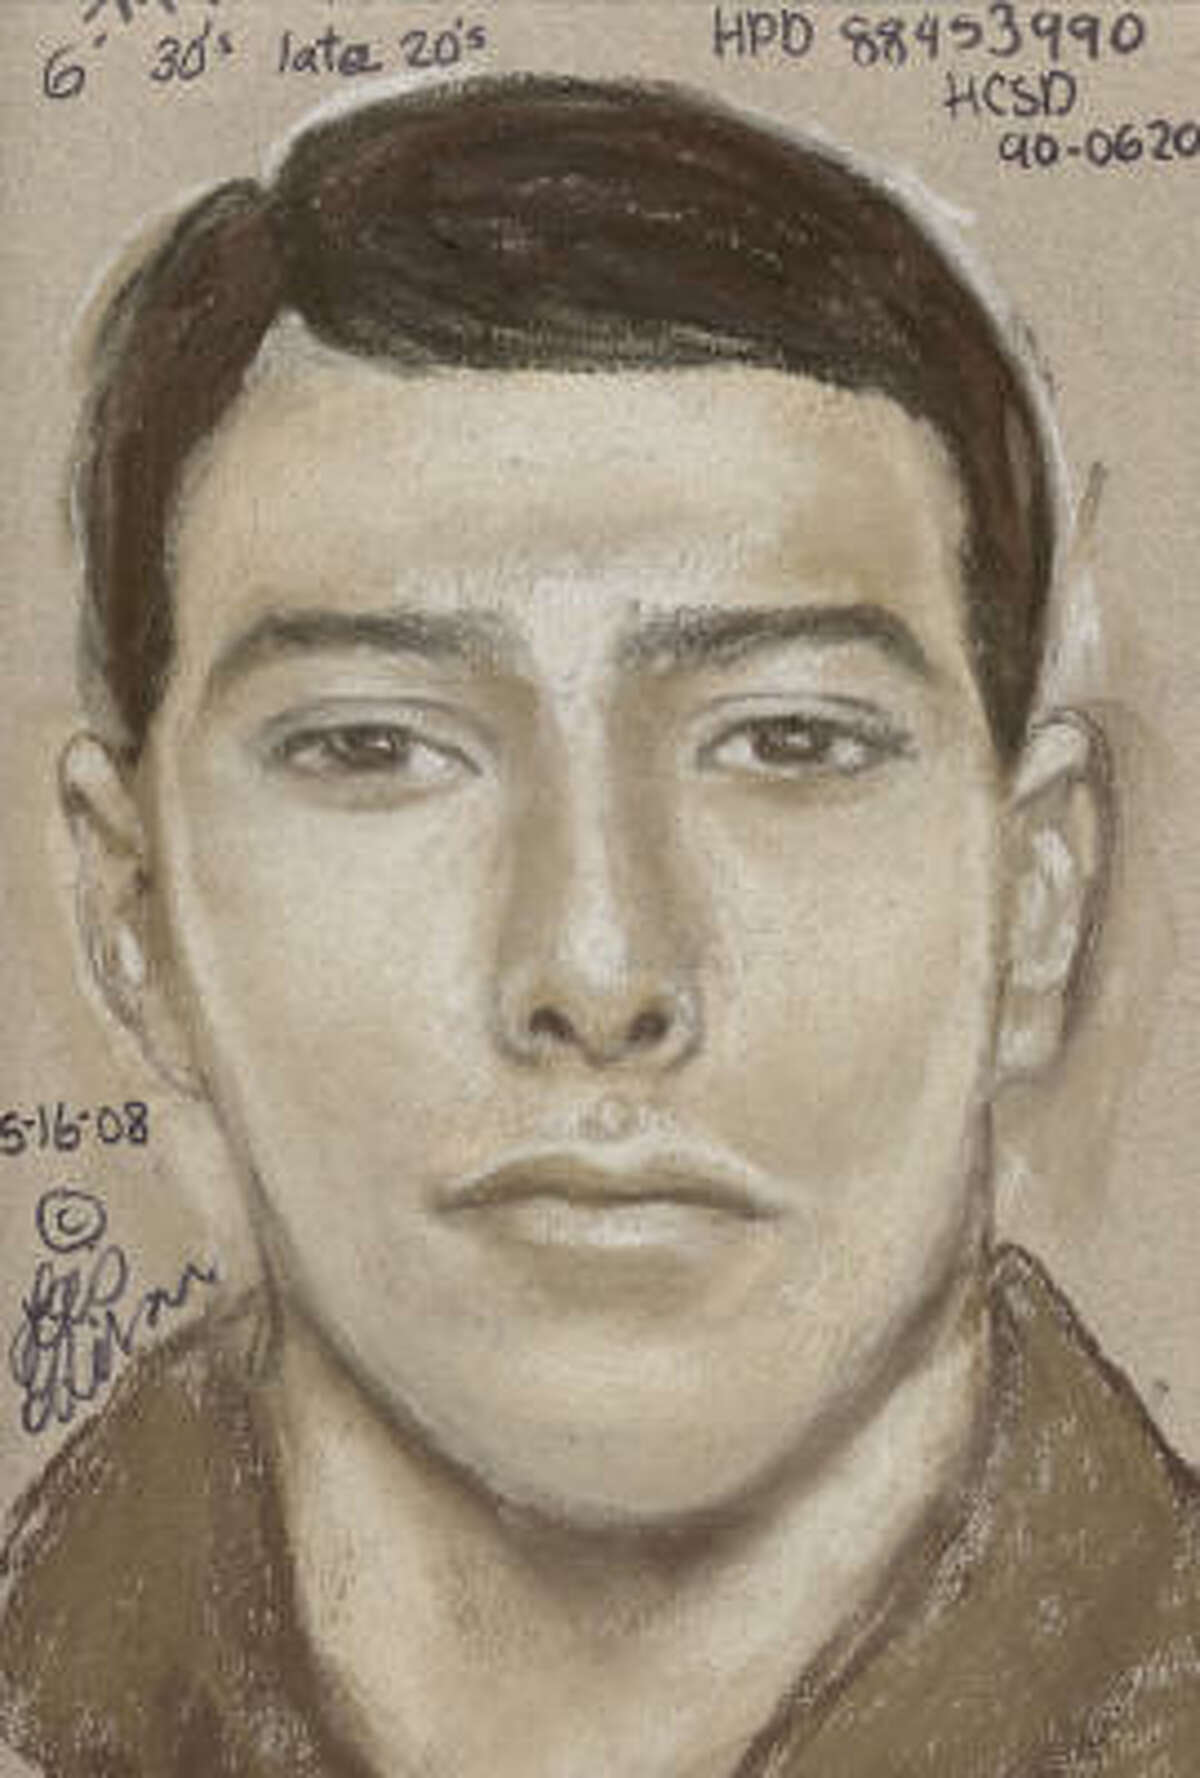 Investigators have released a composite sketch of the suspect in a 1990 rape of an exotic dancer.